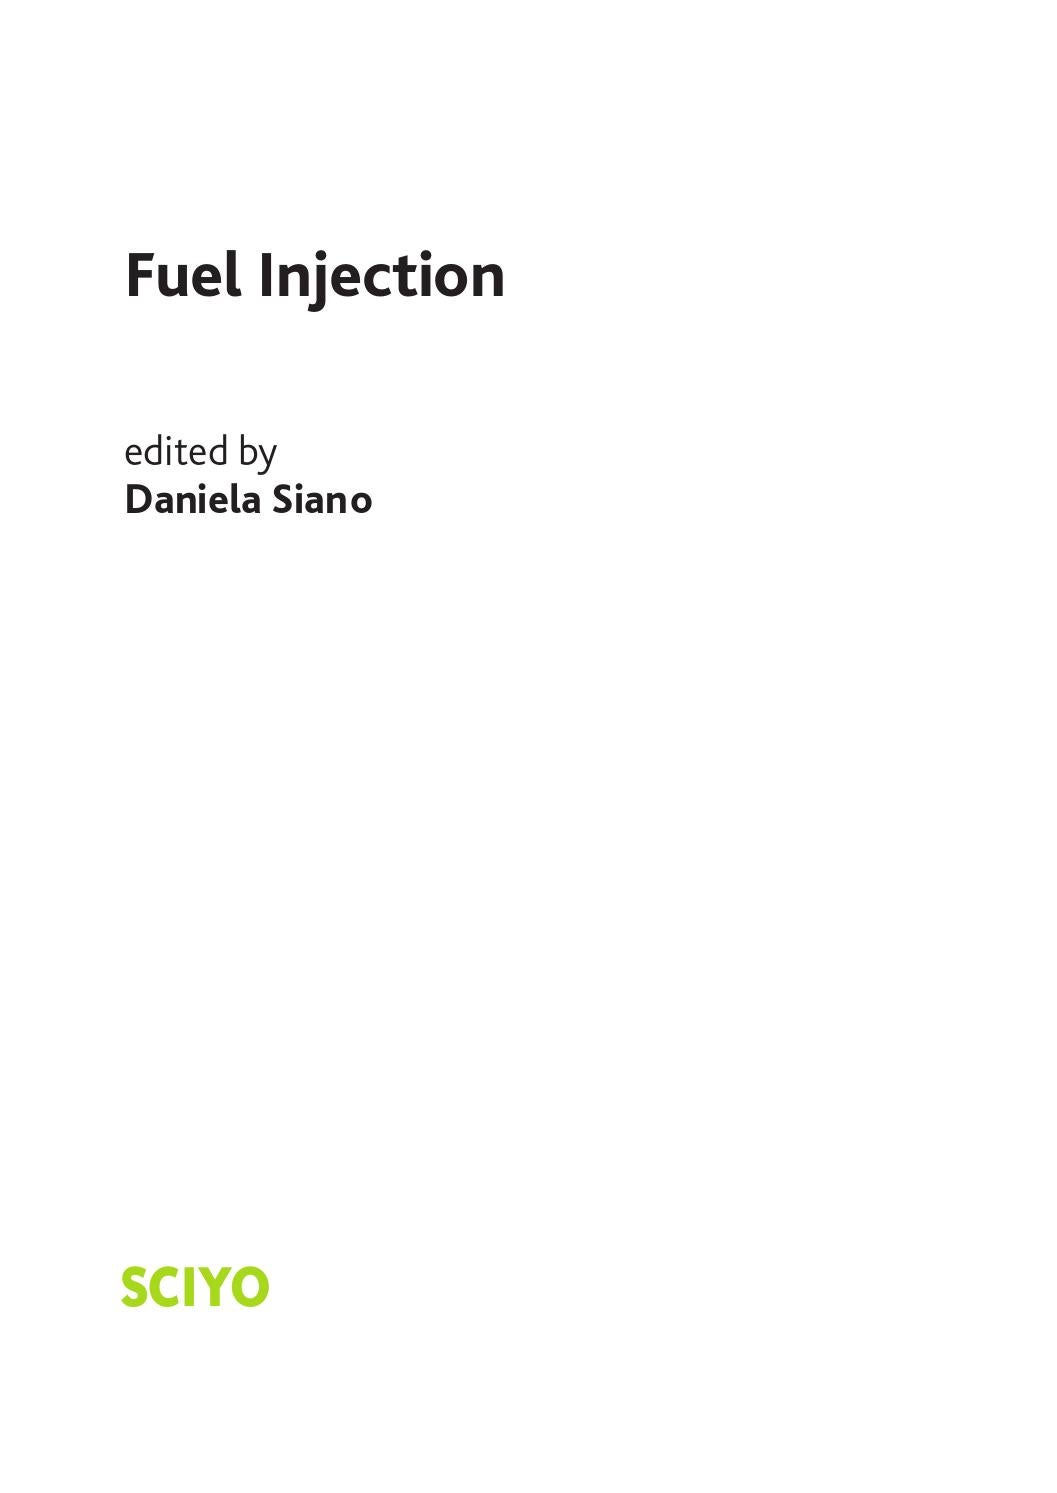 Fuel injection by Marcial Colque Sarmiento - issuu